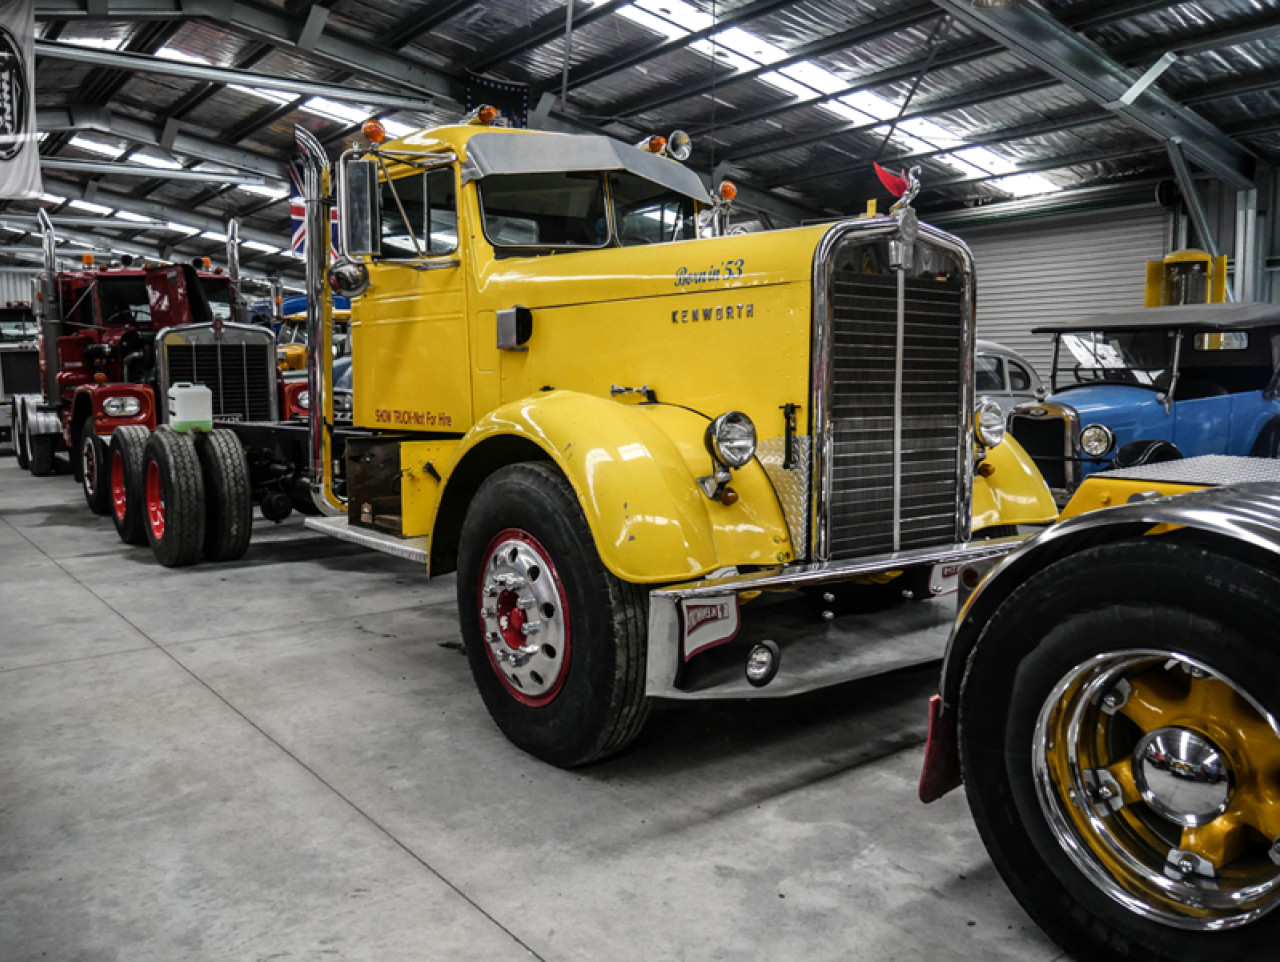 The collection is housed in a purpose-built hangar and displays around thirty trucks and vintage cars.